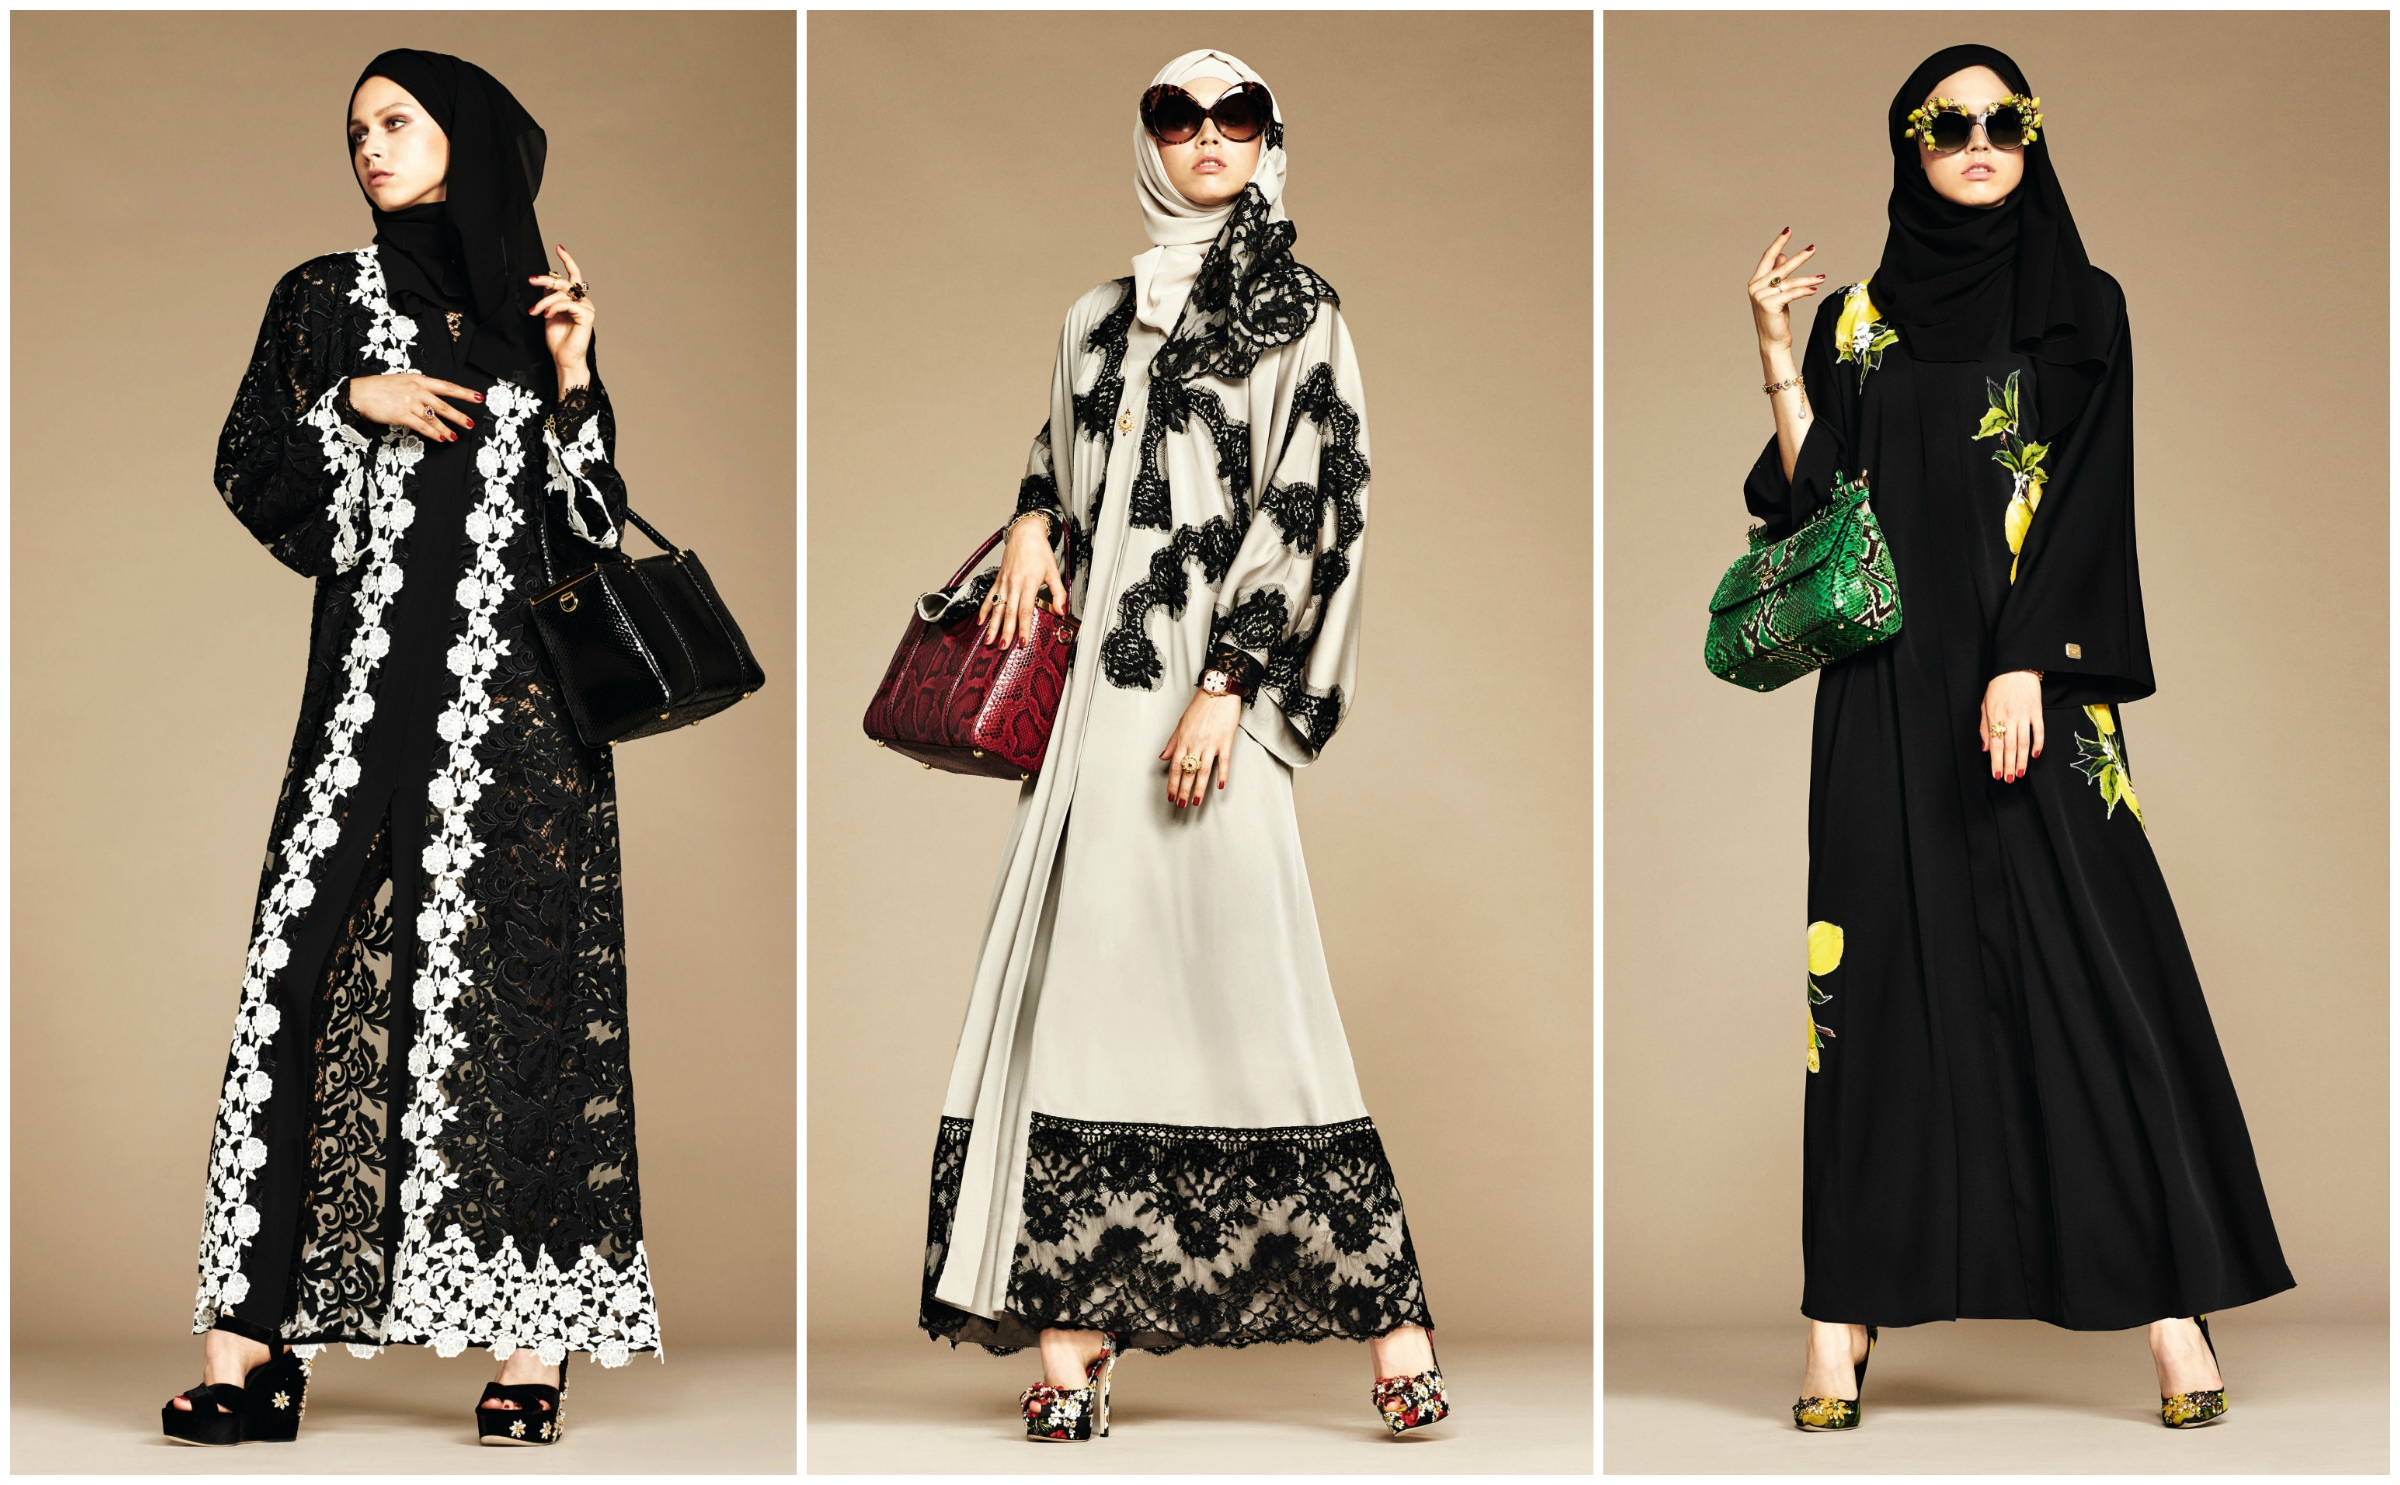 Dolce & Gabbana's new abaya and hijab line, debuted on Style.com/Arabia